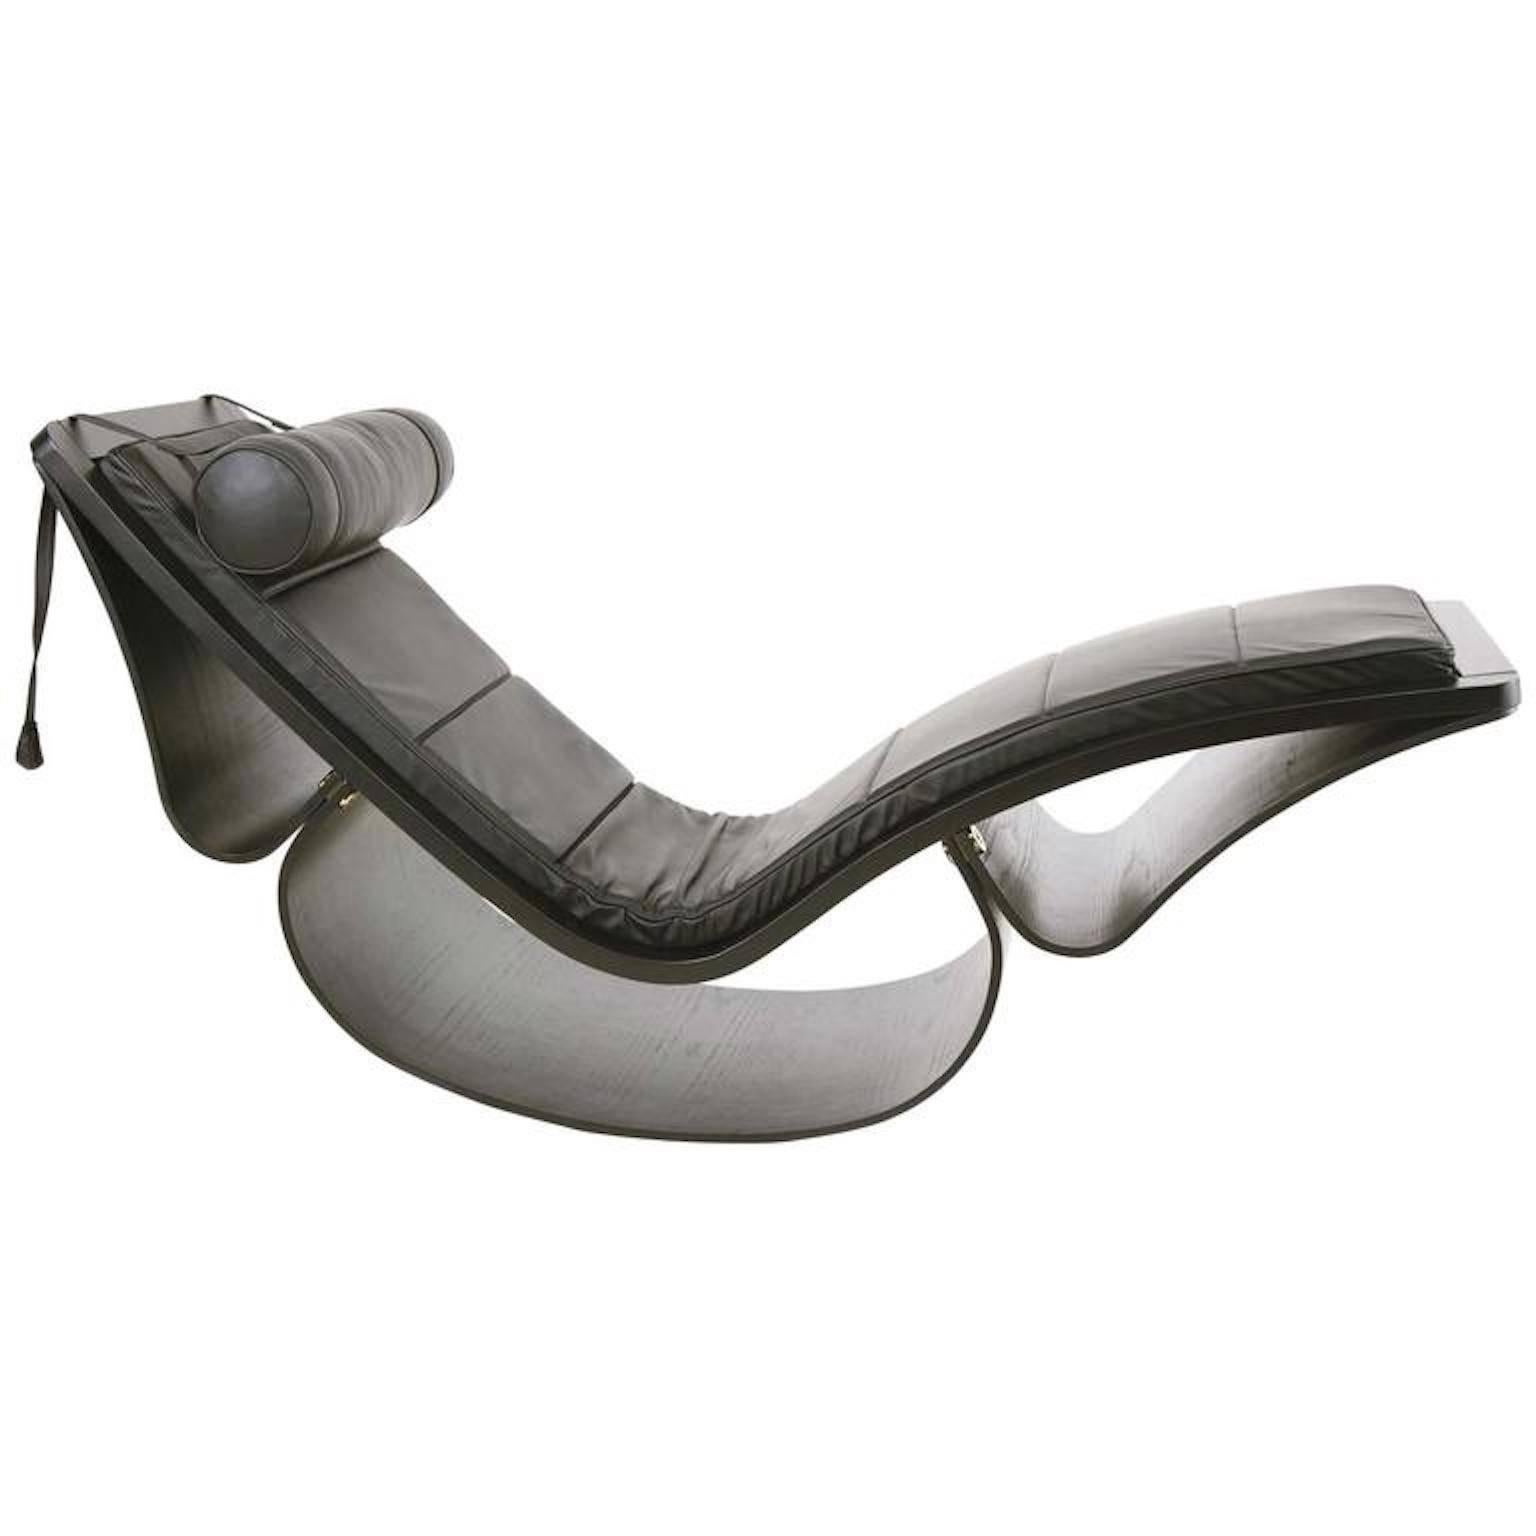 Antique And Vintage Chaise Longues 1 305 For Sale At 1stdibs